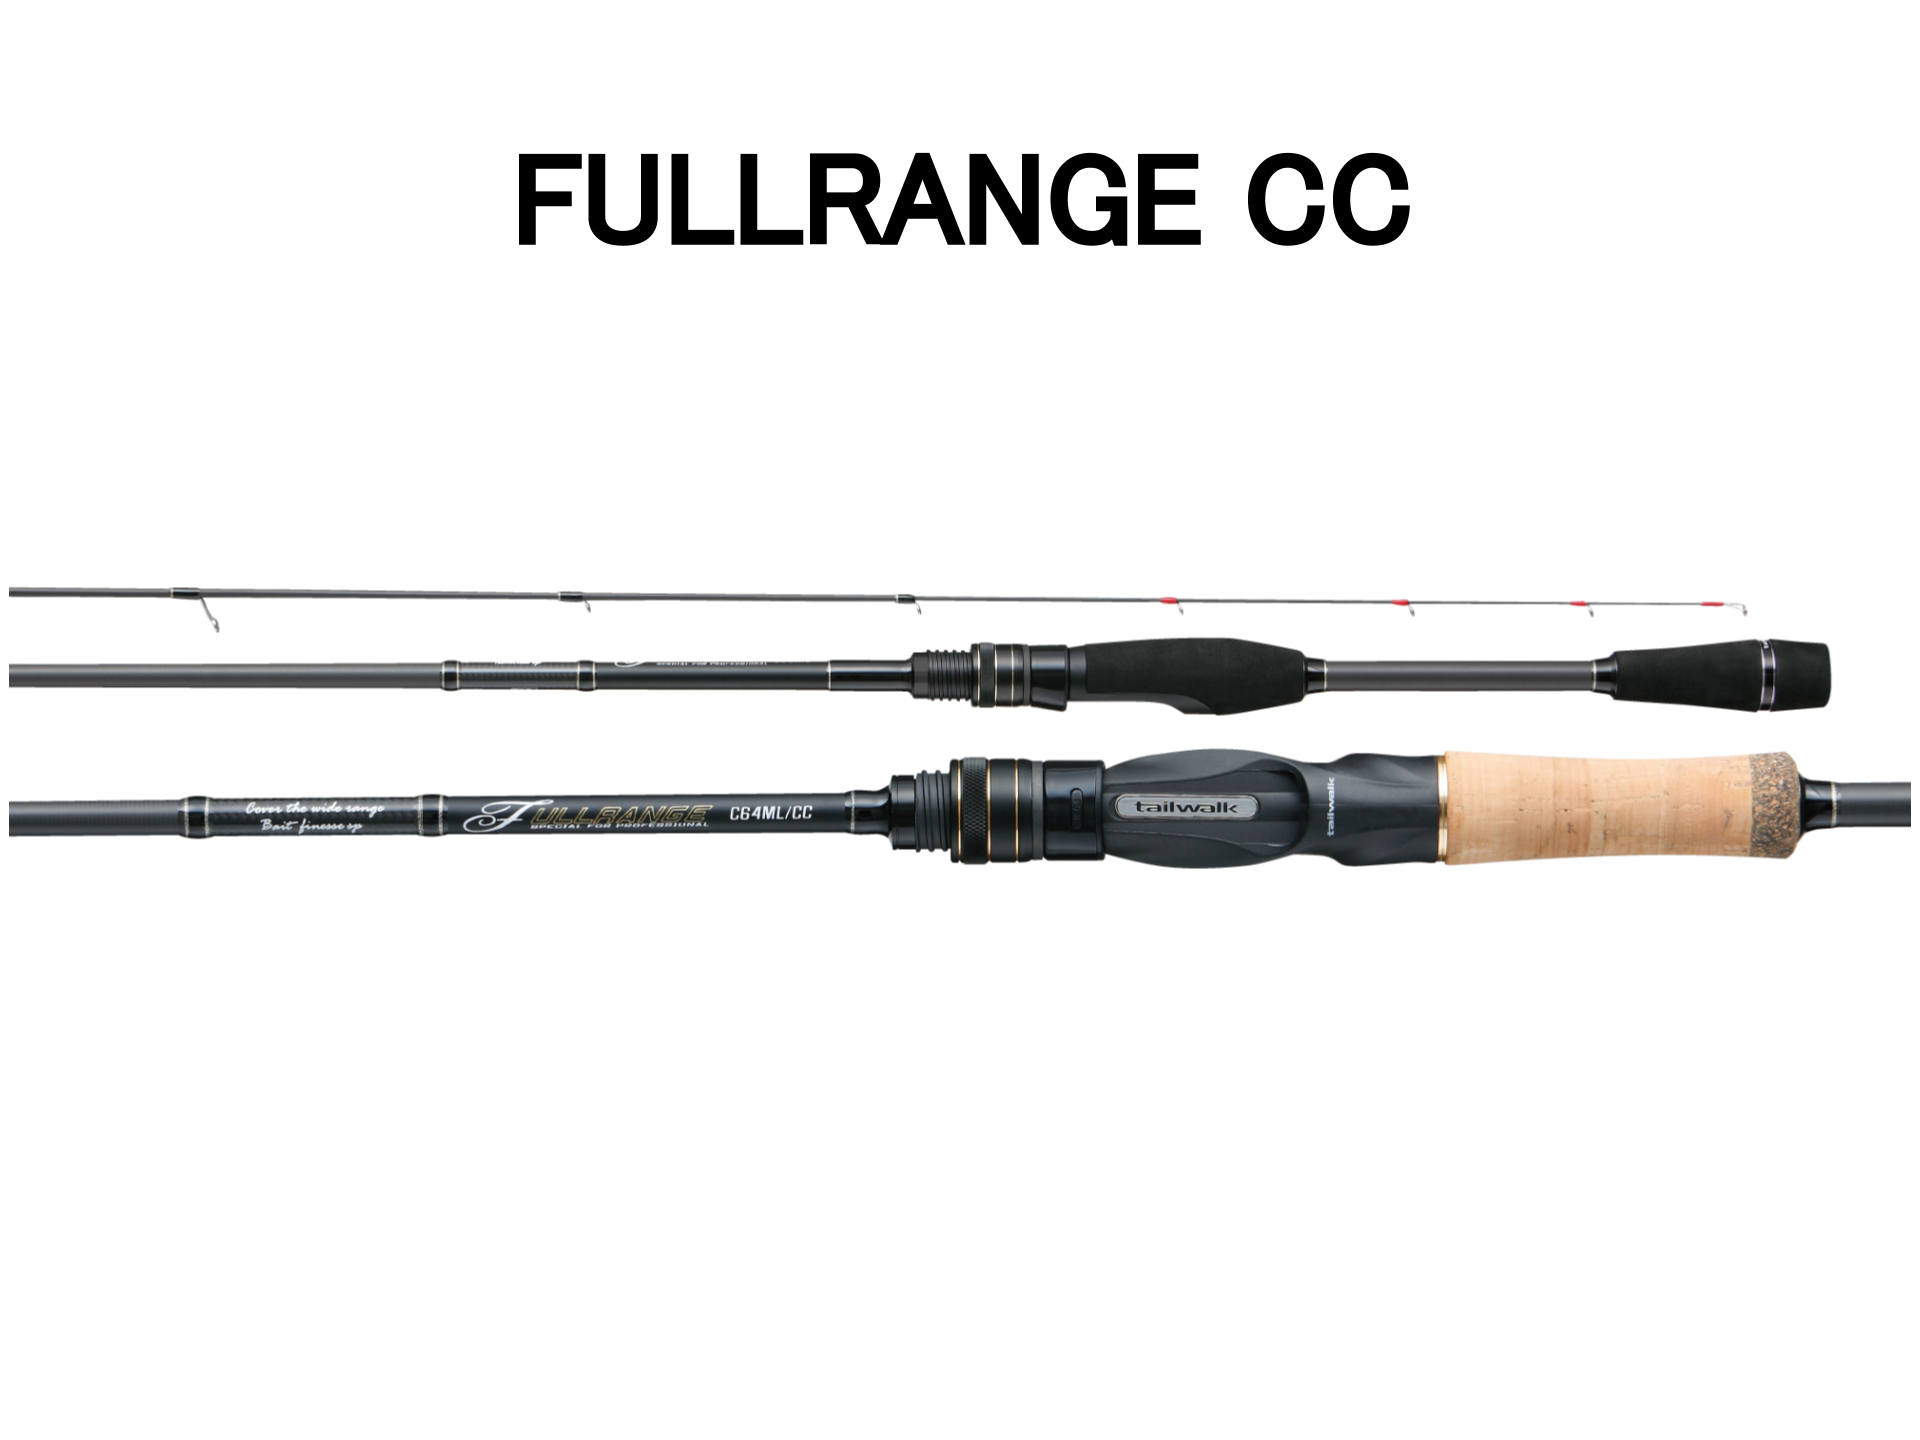 Fullrange CC Spinning Model